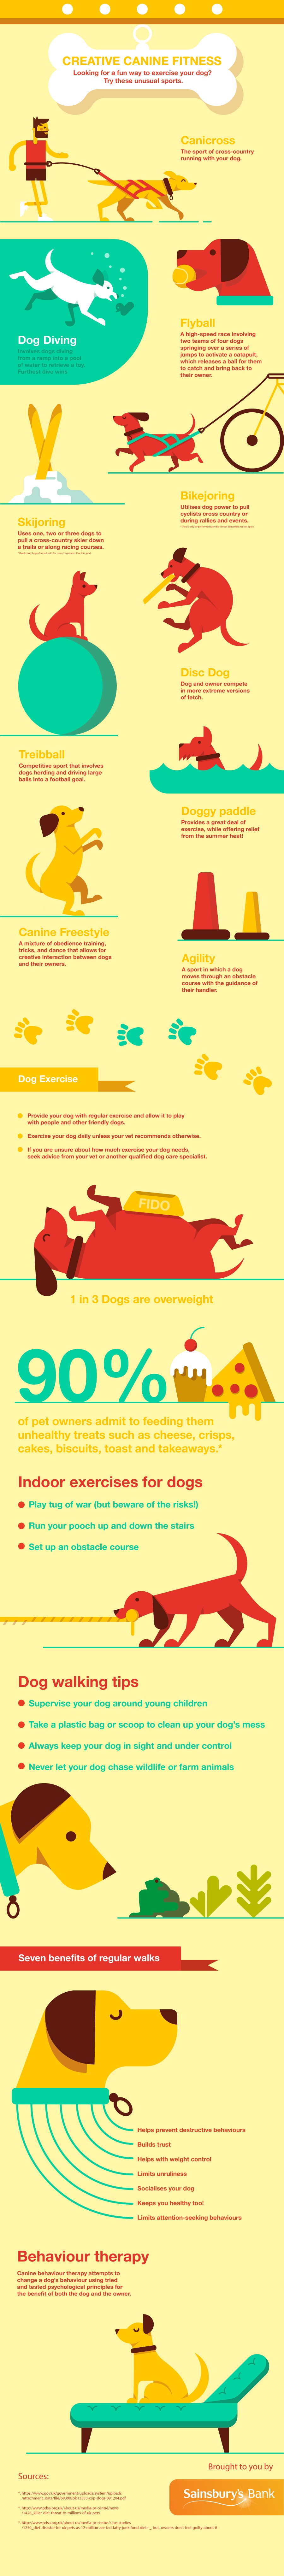 Creative Ways to Boost Canine Fitness - Infographic